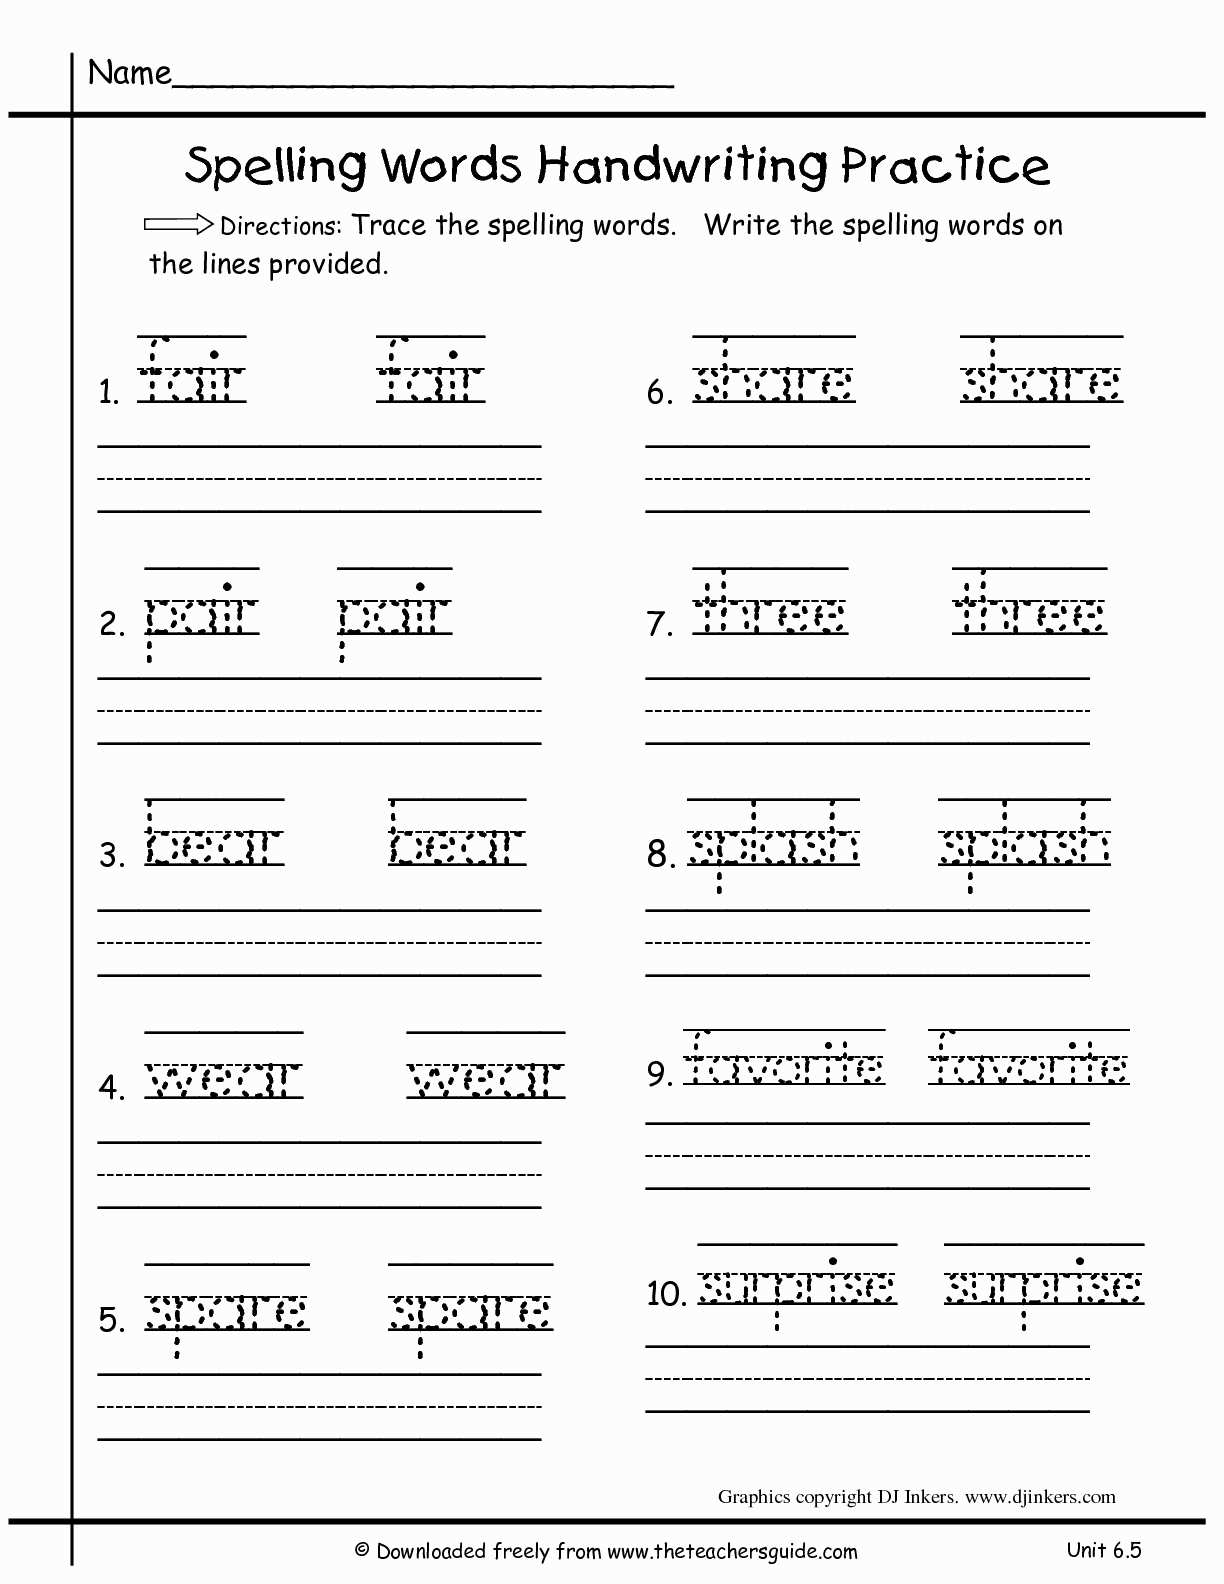 Worksheet : Free Printable Language Arts Worksheets For 1St Grade | Free Printable Language Arts Worksheets For 1St Grade